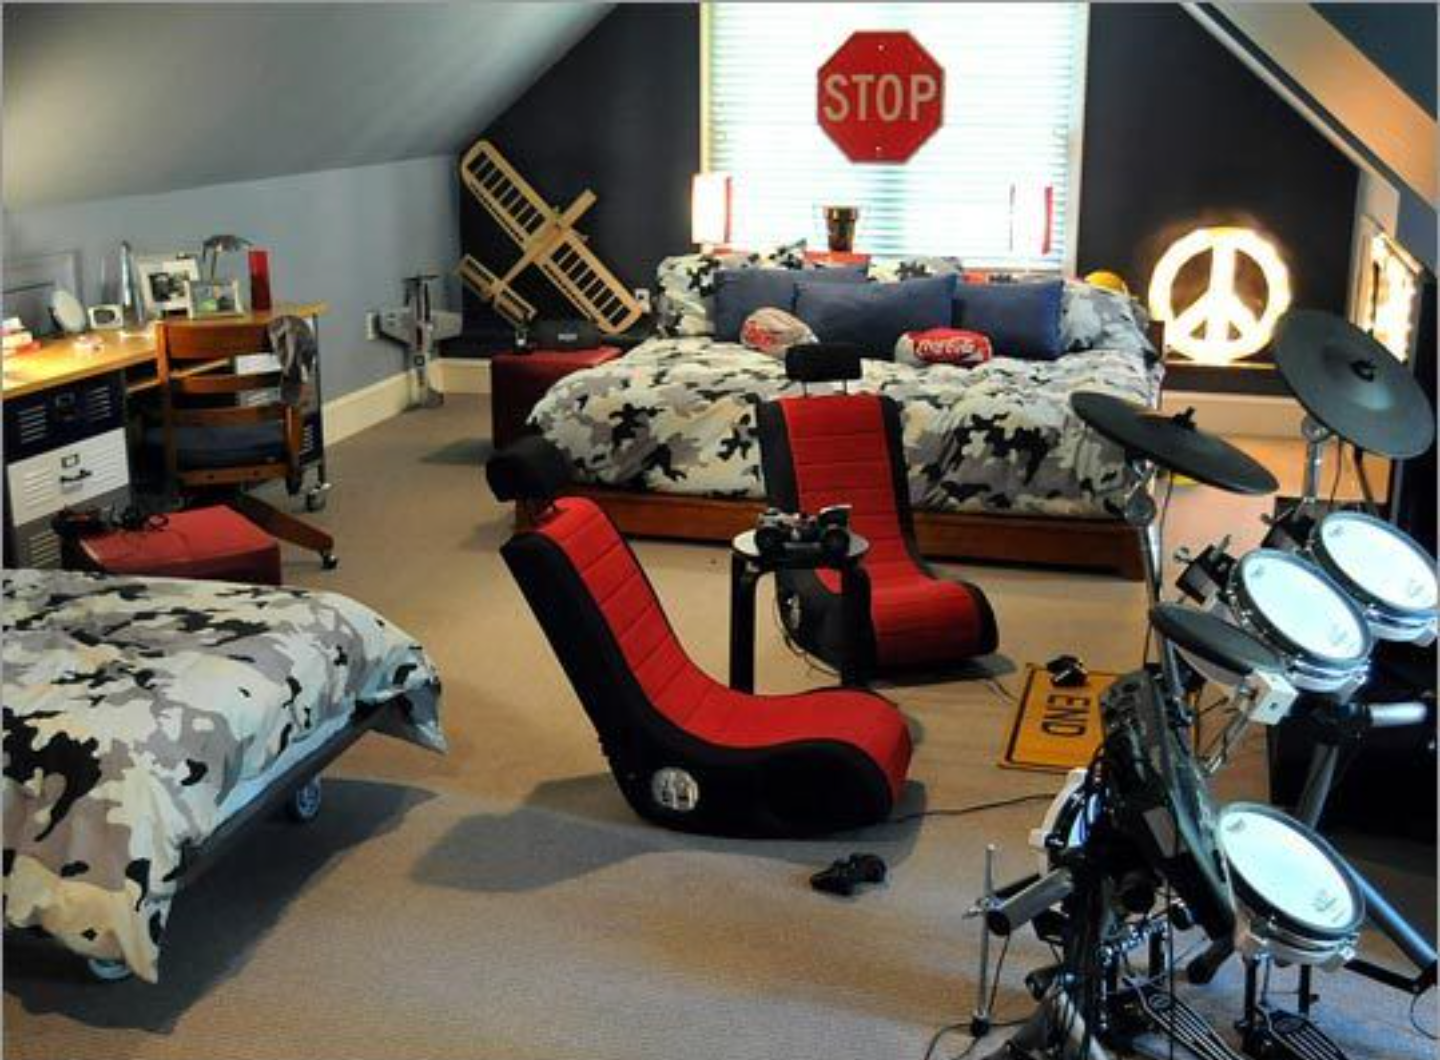 Teenage boys bedroom ideas - This Is The Perfect Shared Bedroom For Preteen Brothers Teens Judging By The Larger